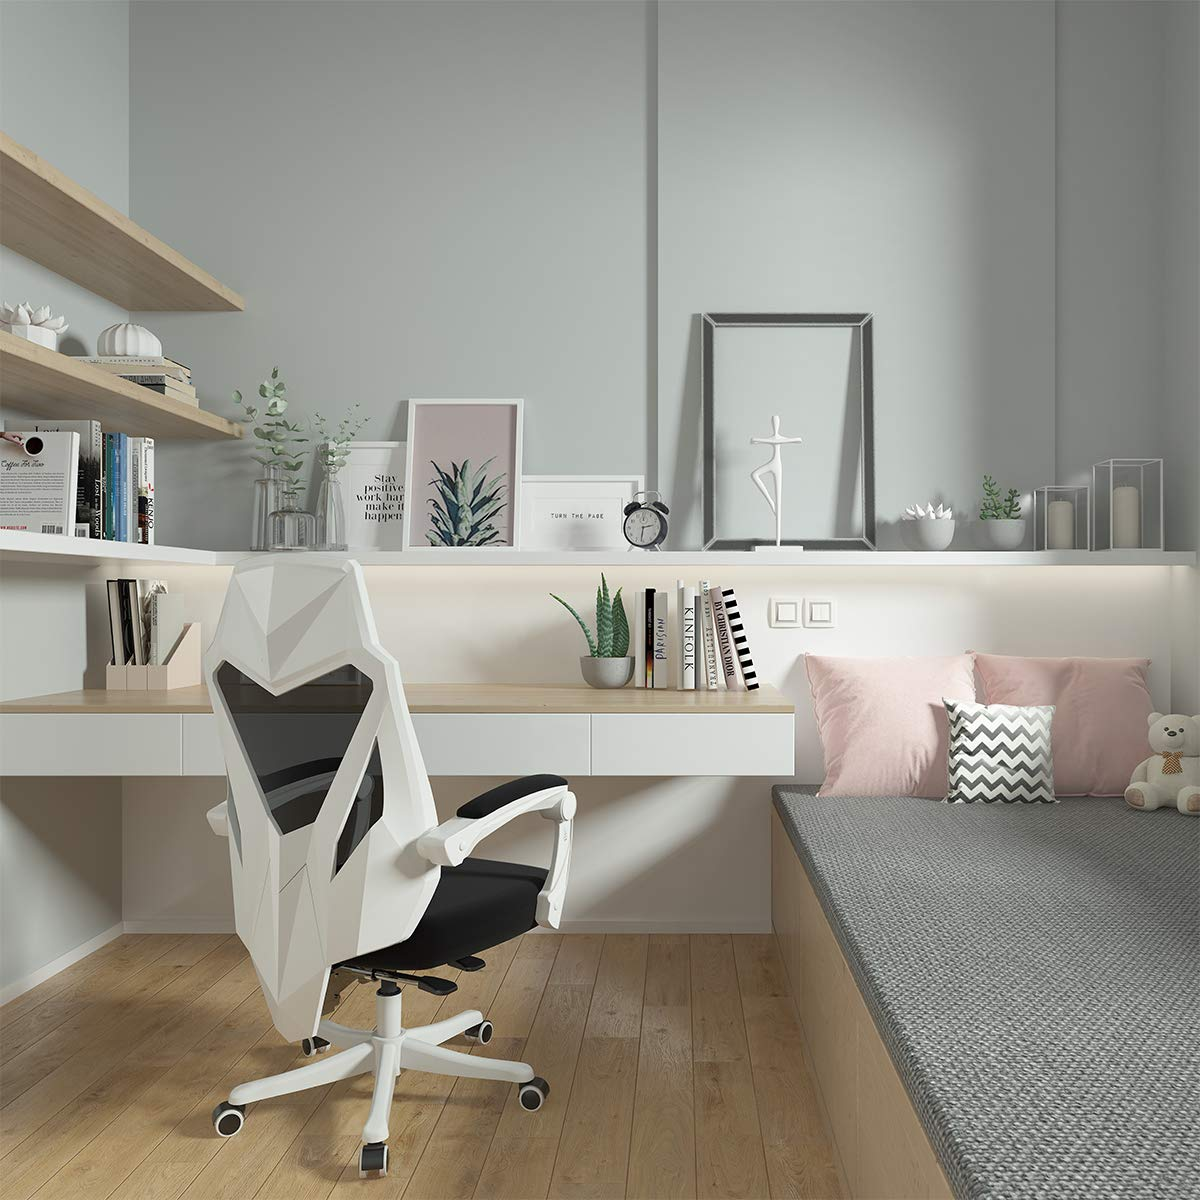 Hbada Office Computer Desk Chair - Ergonomic High-Back Swivel Task Gaming Chair - White by Hbada (Image #6)